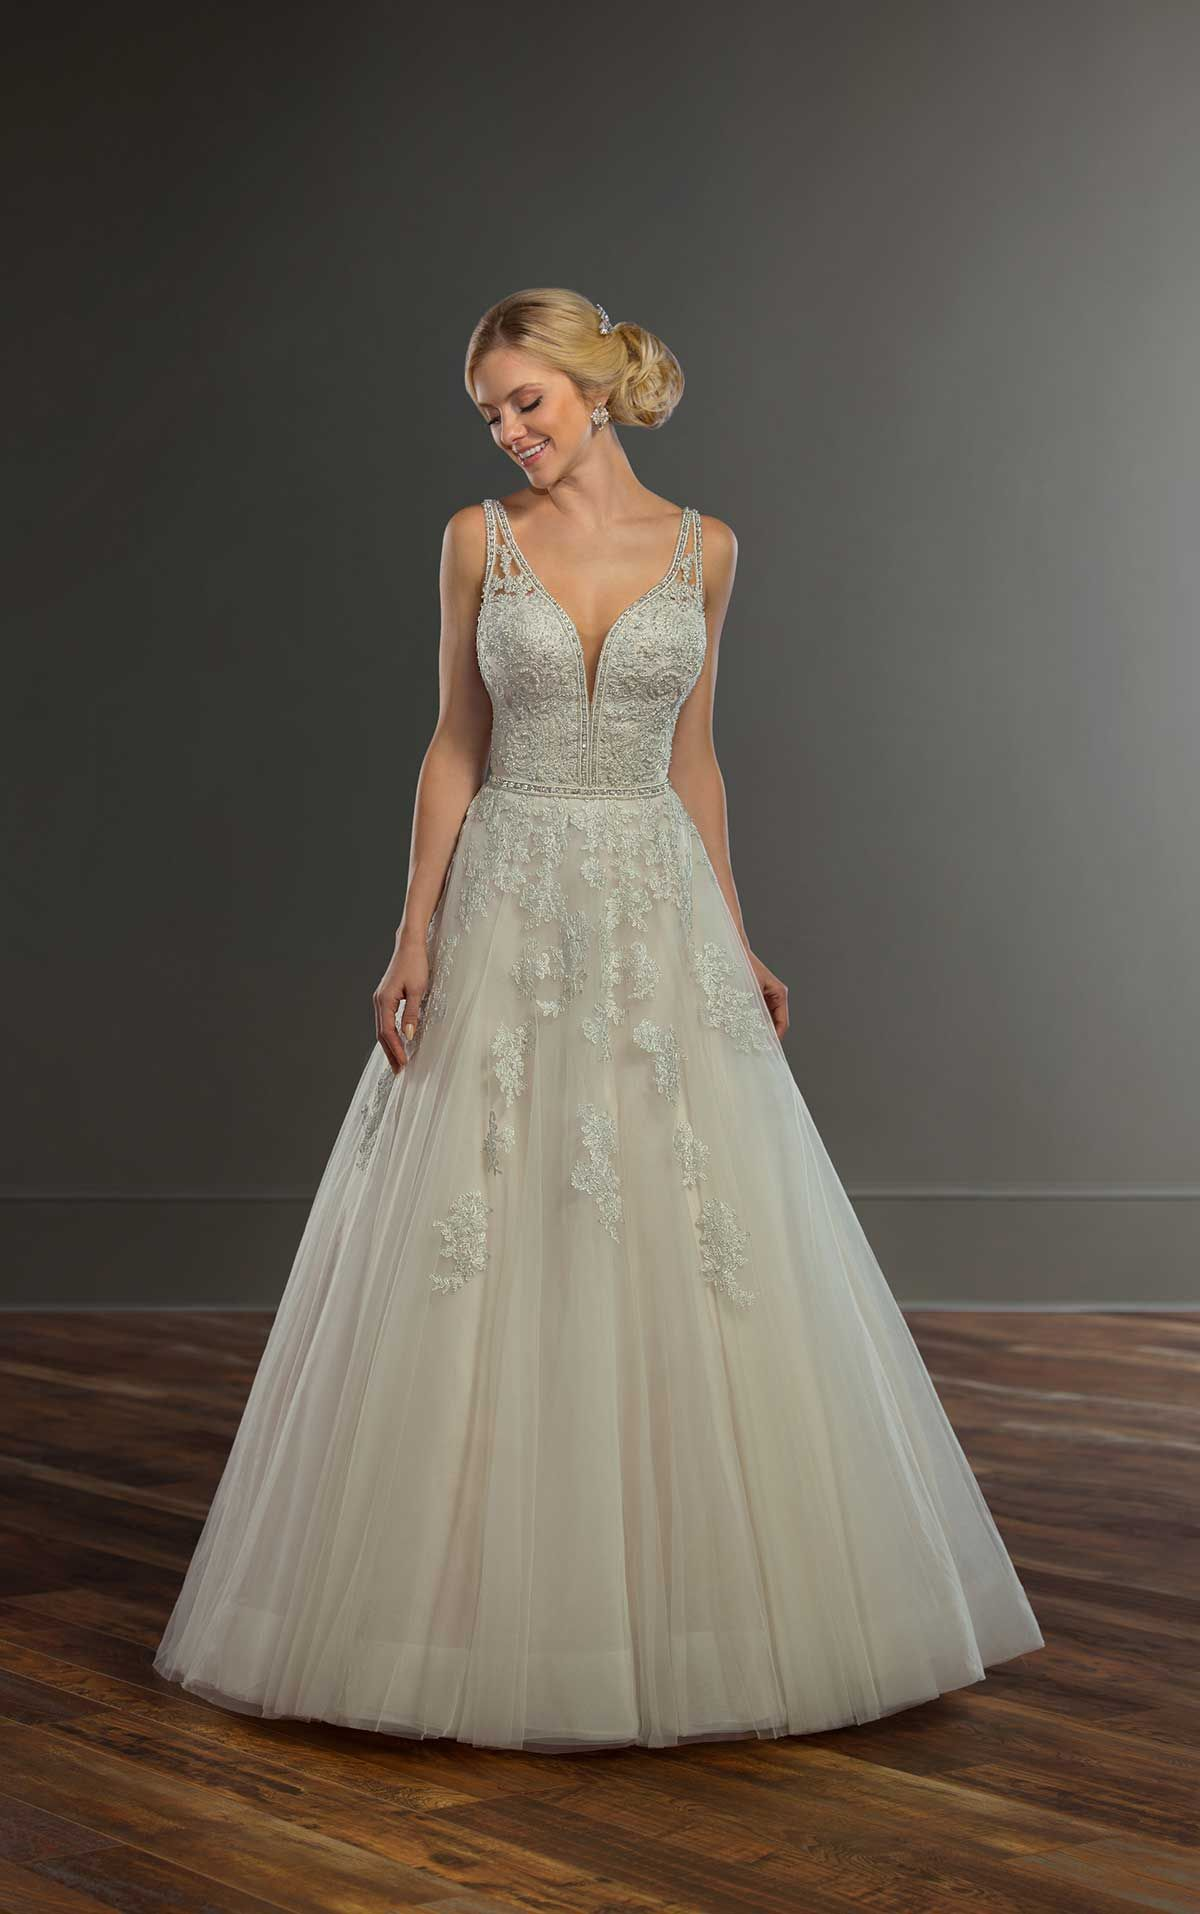 Elegant Beaded Ballgown Wedding Dress | Essense of Australia ...